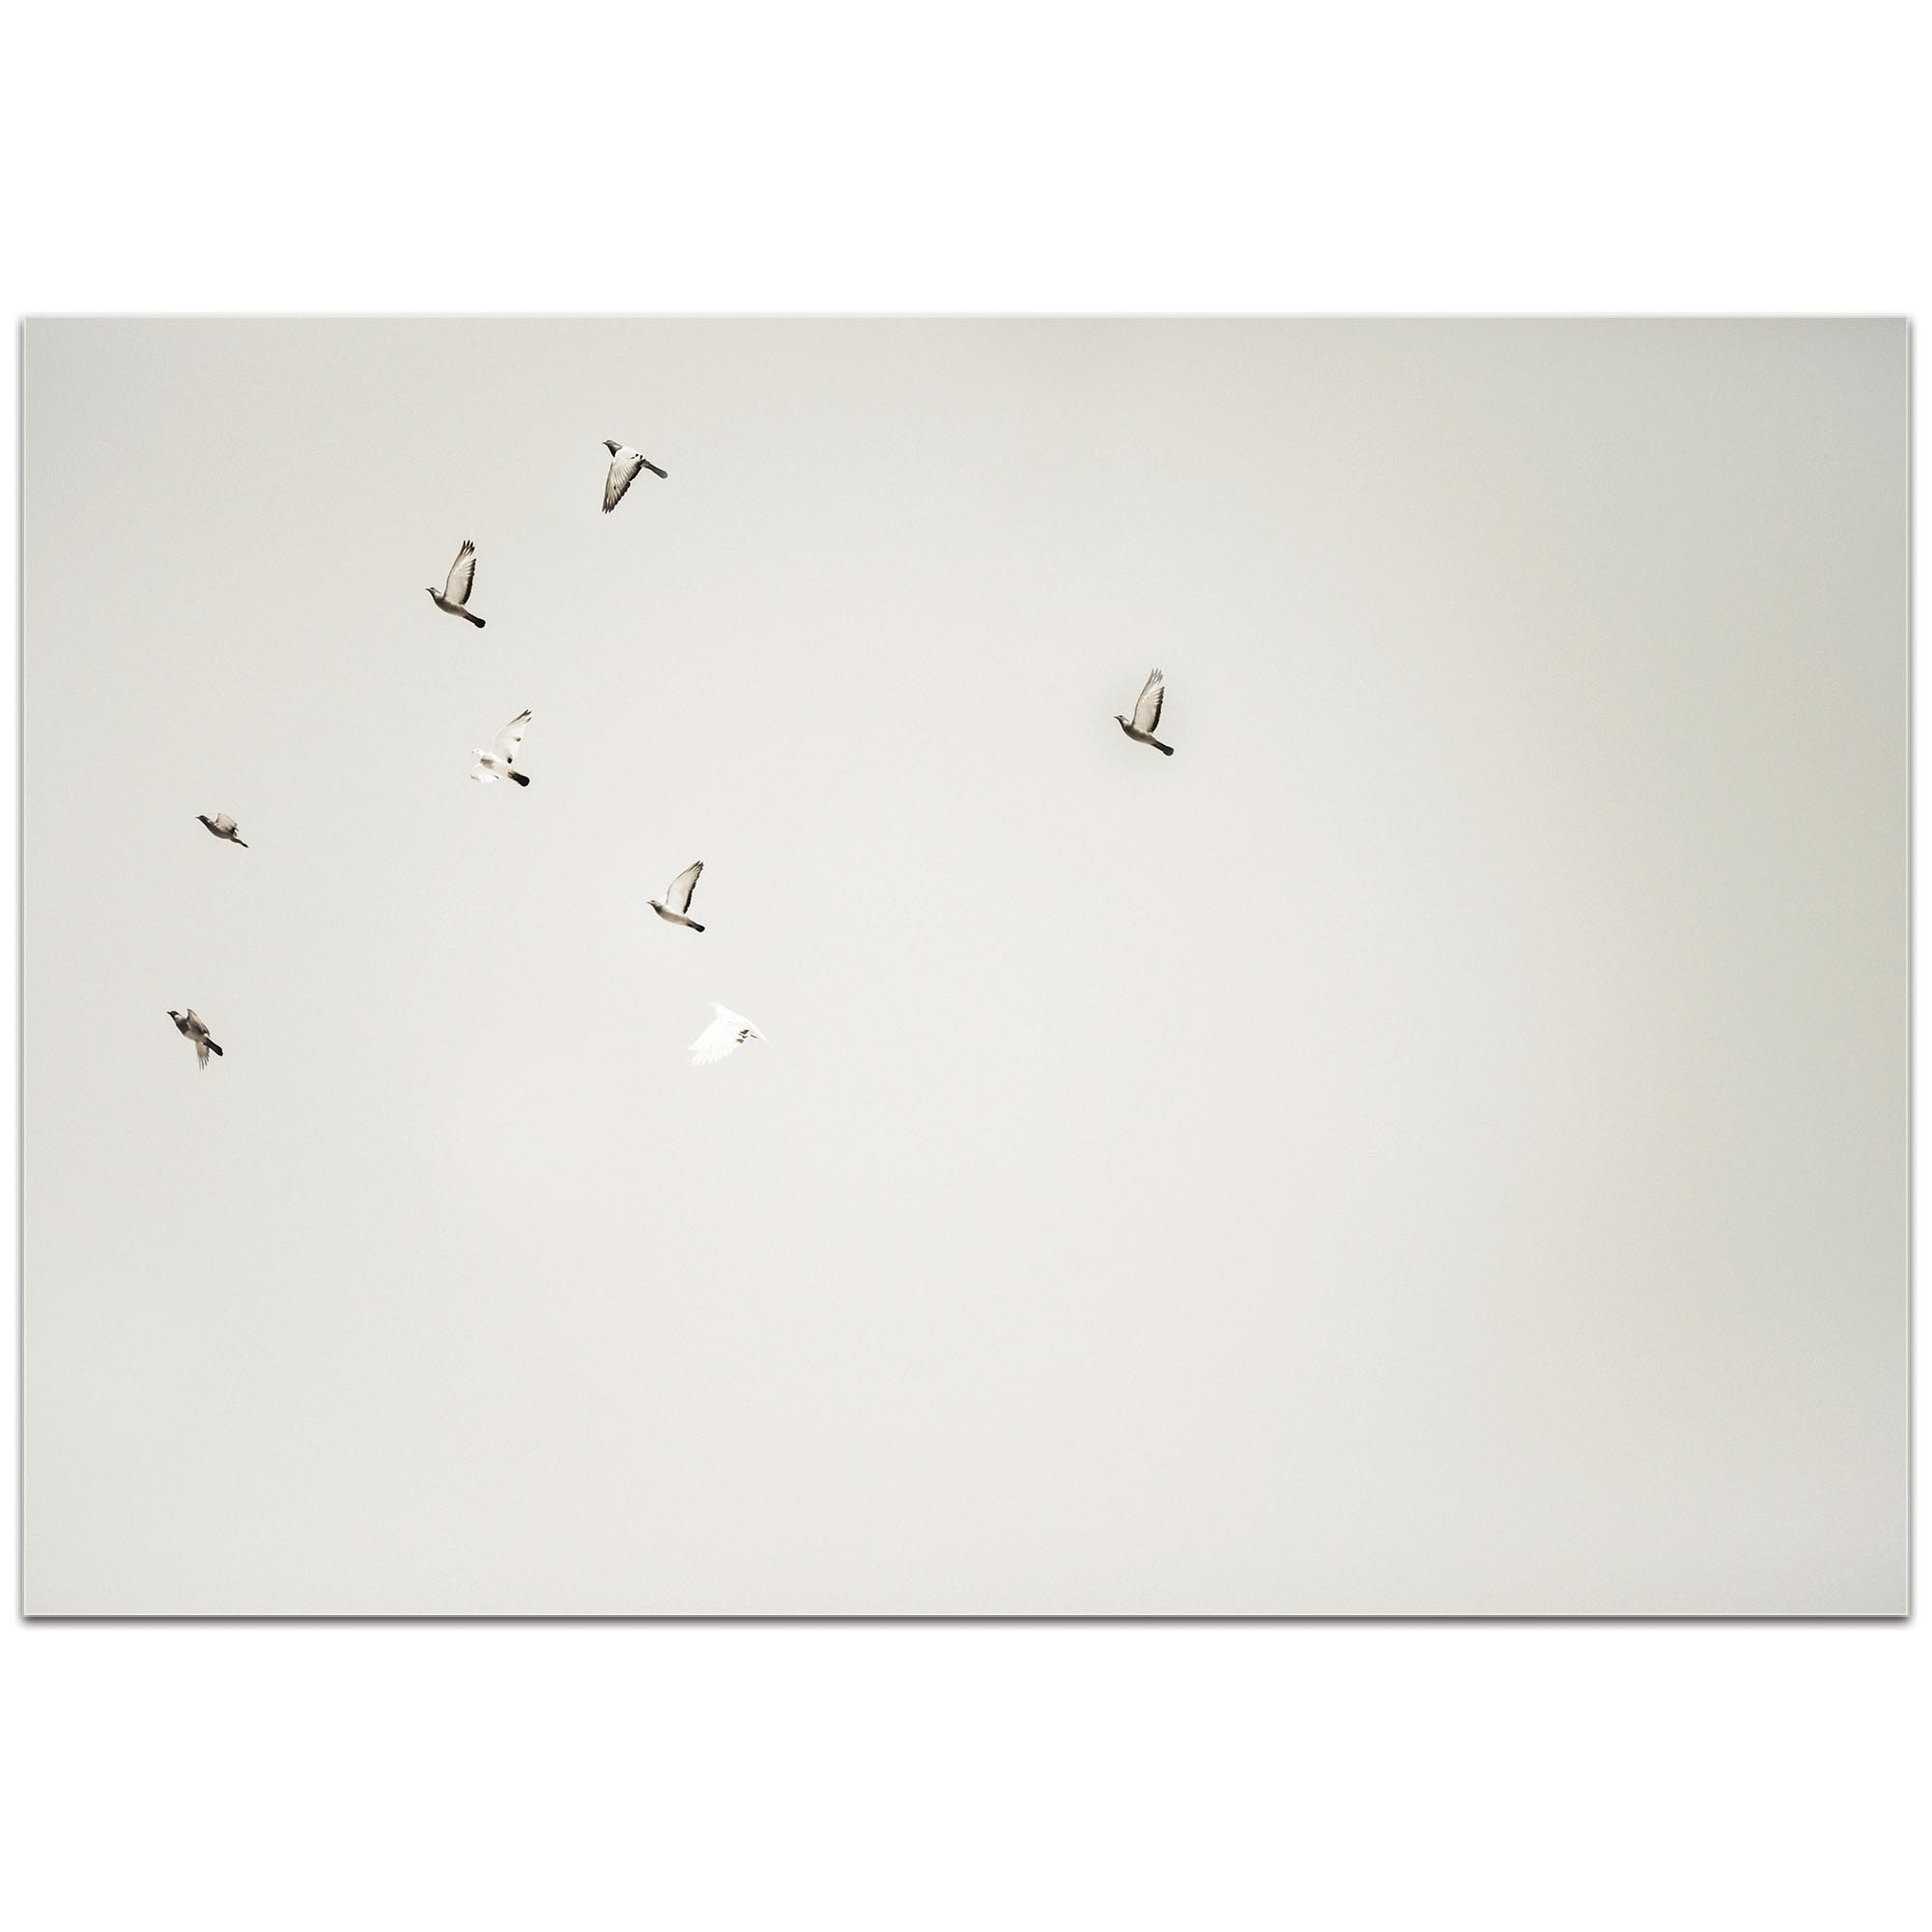 Minimalist Wall Art 'The Journey' - Wildlife Decor on Metal or Plexiglass - Image 2